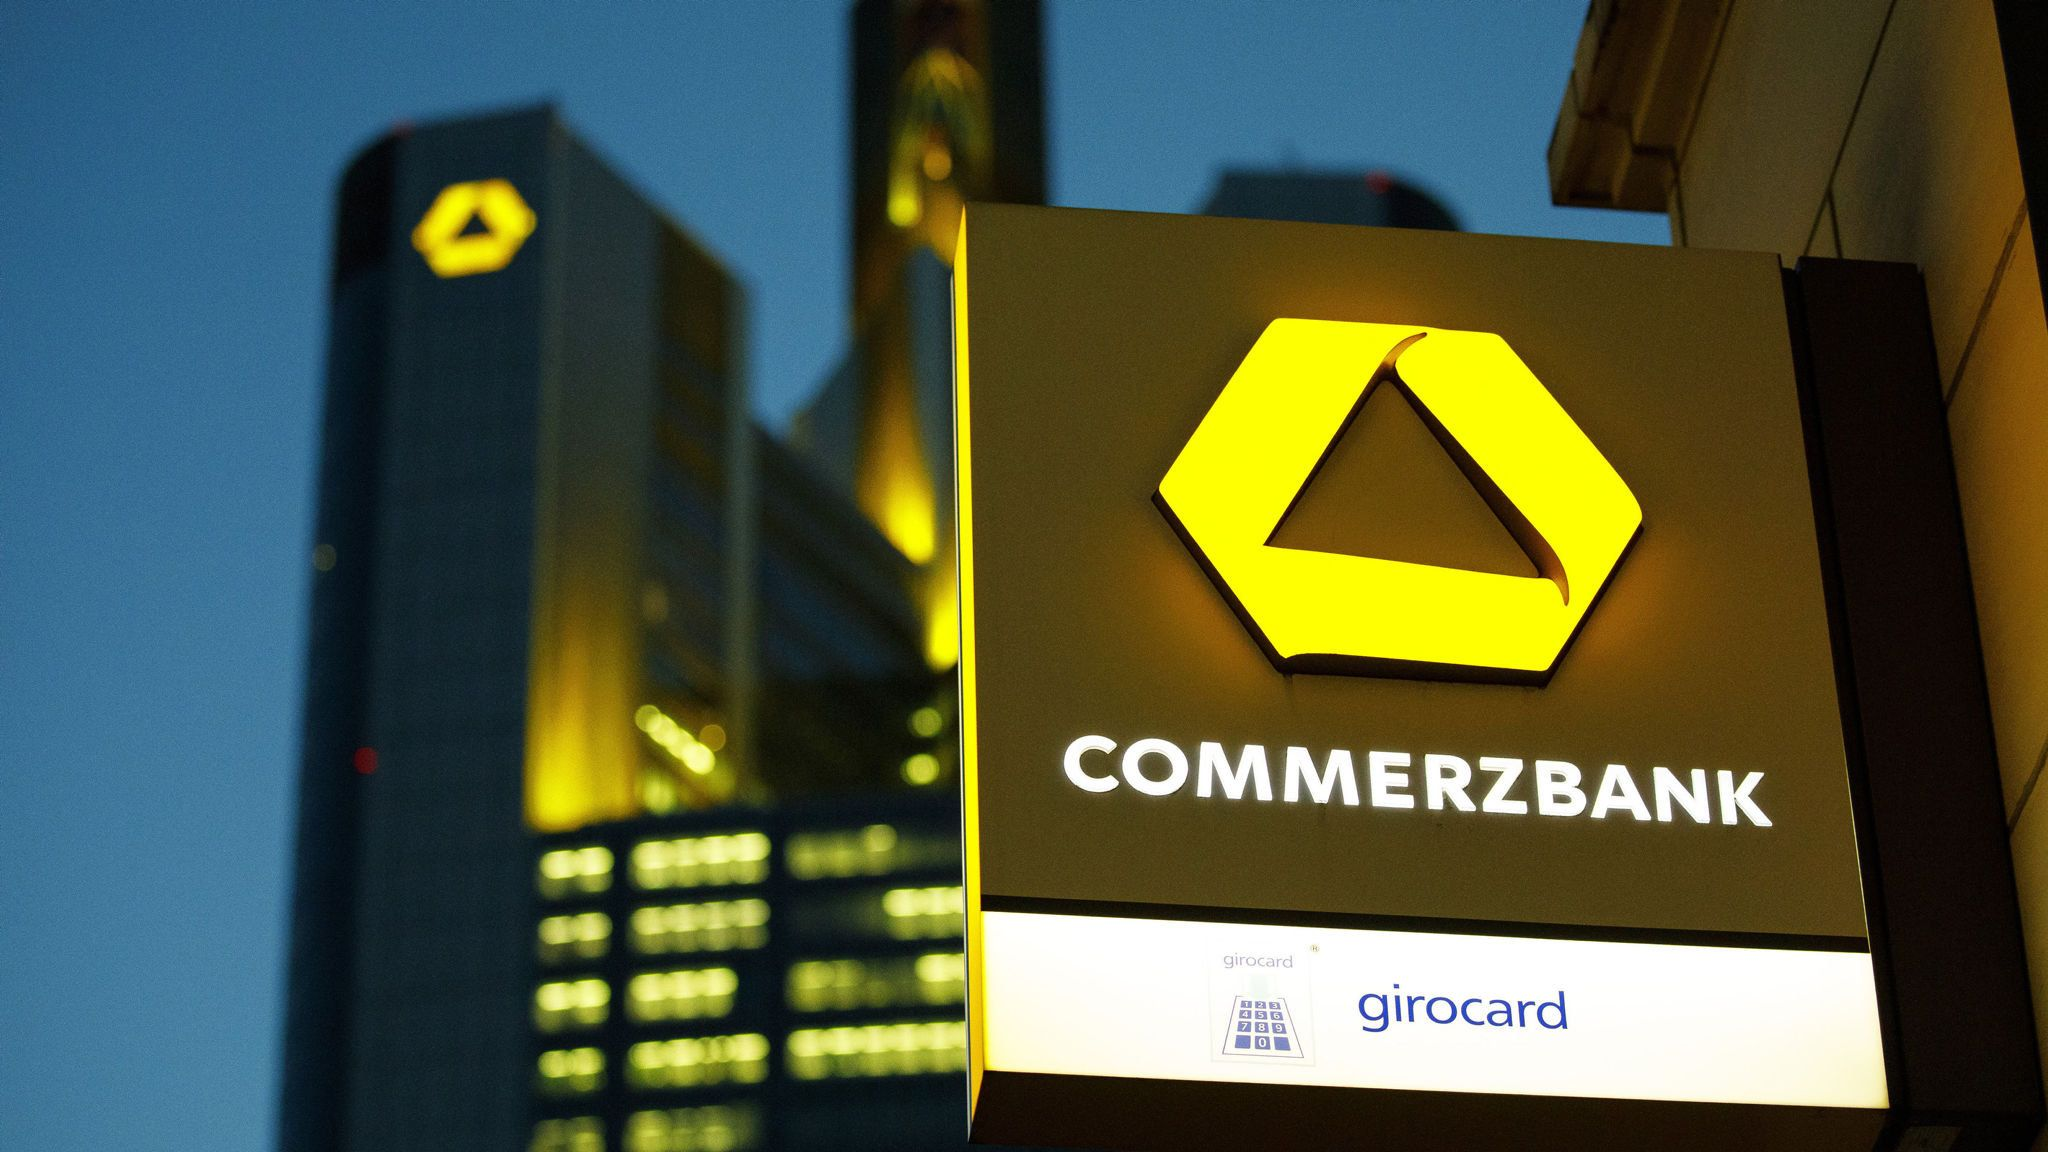 Commerzbank told to speed up restructuring by ECB | Financial Times